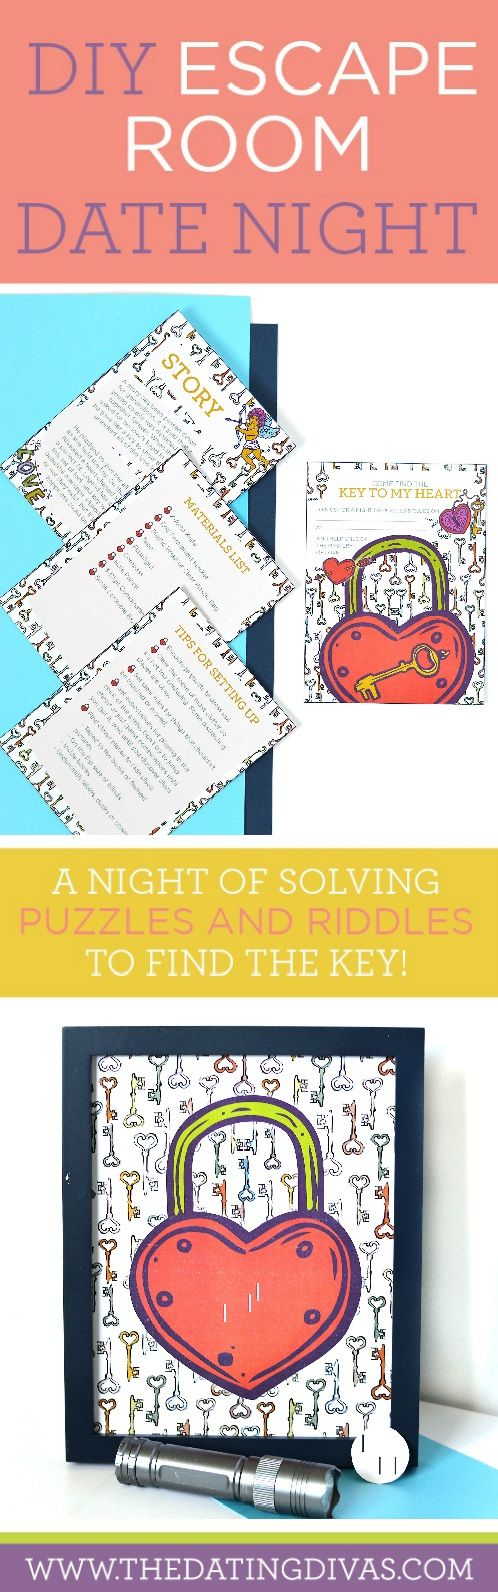 Best 25 date night games ideas on pinterest date night best 25 date night games ideas on pinterest date night questions marriage games and relationship games solutioingenieria Image collections